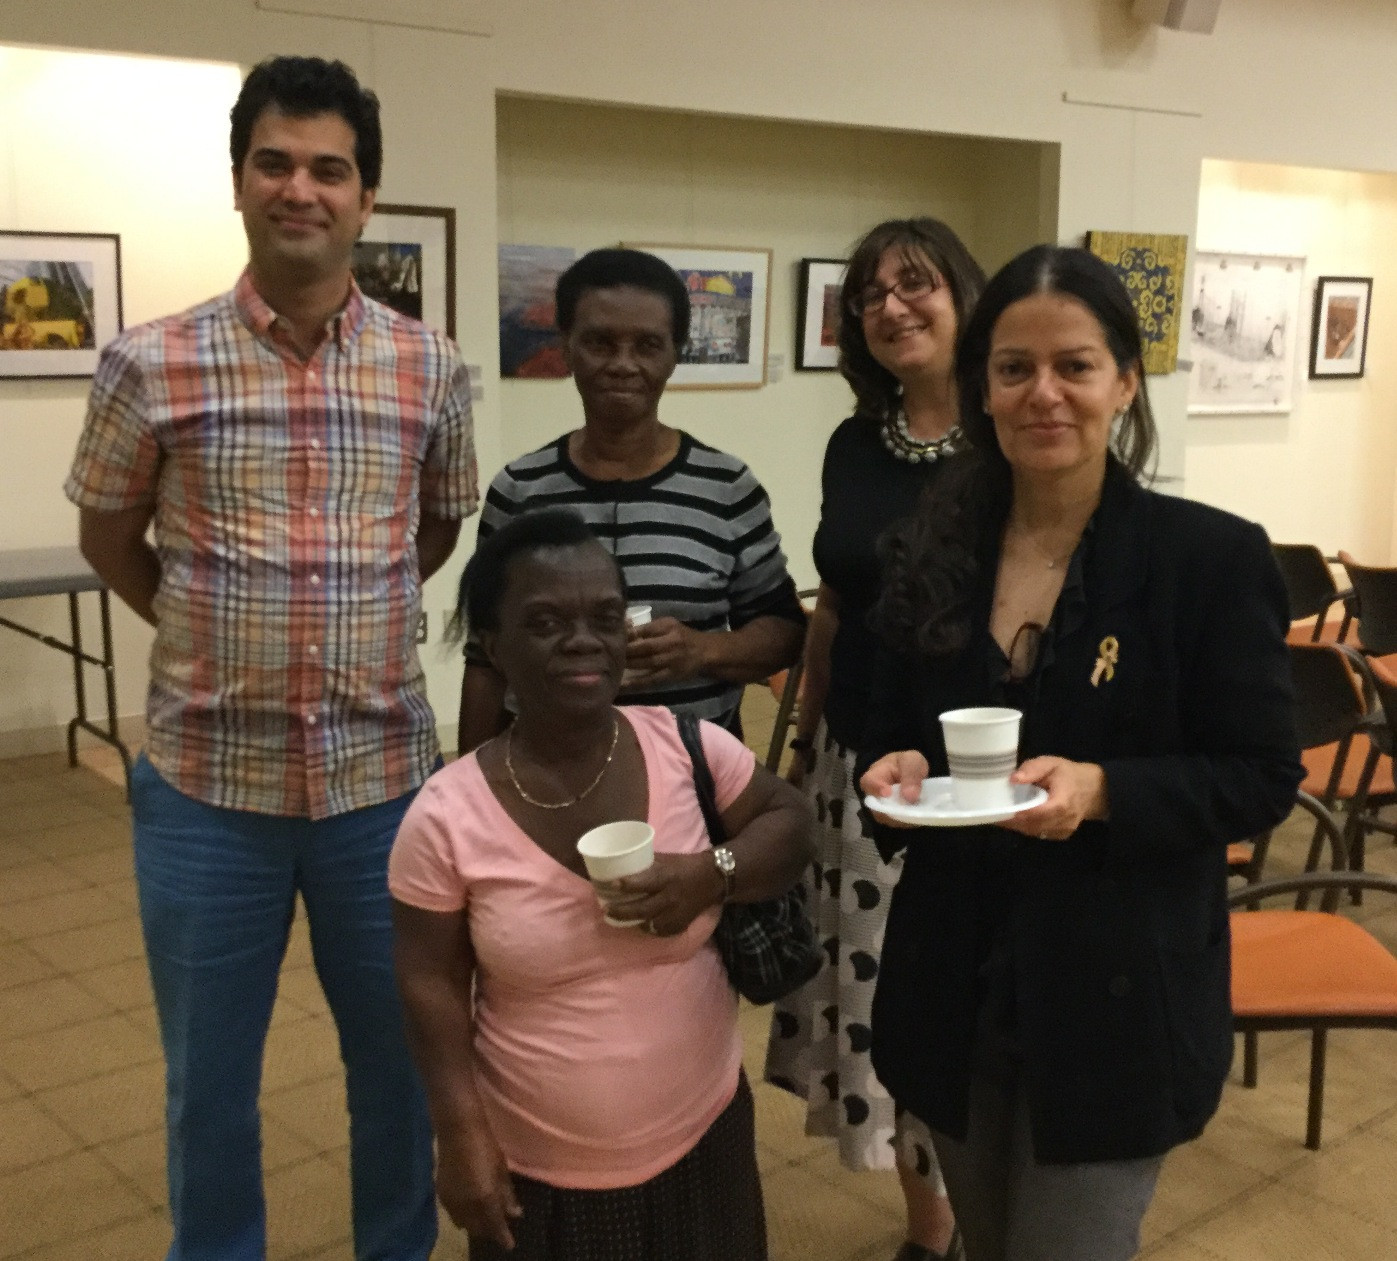 Five people celebrating end of citizenship classes